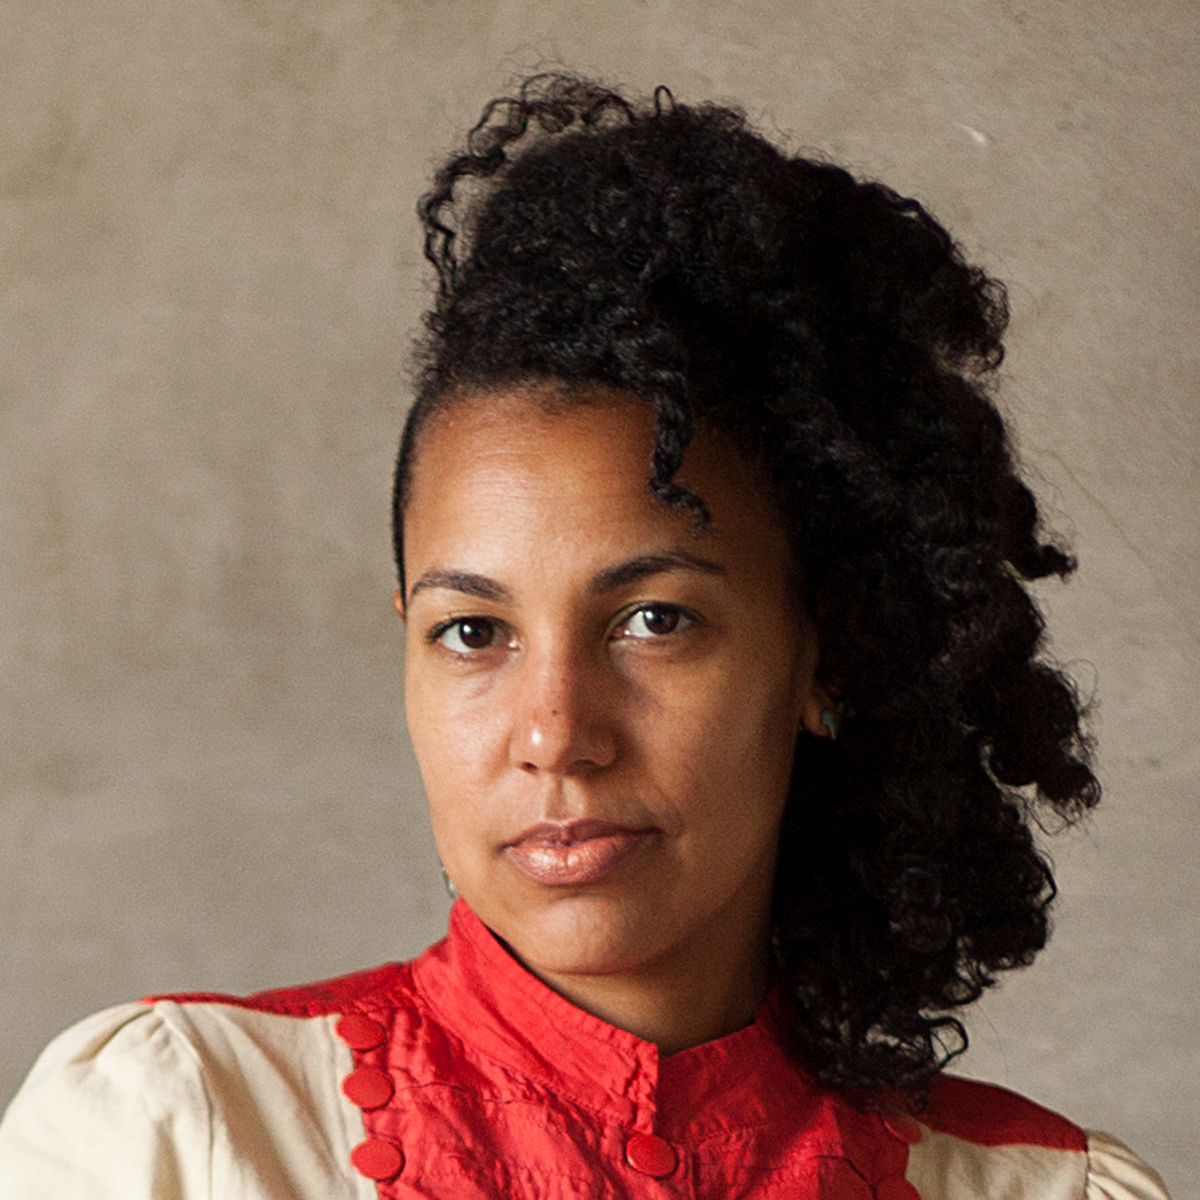 Suné Woods. 7 January 2014. Photo by Dareen Hussein.